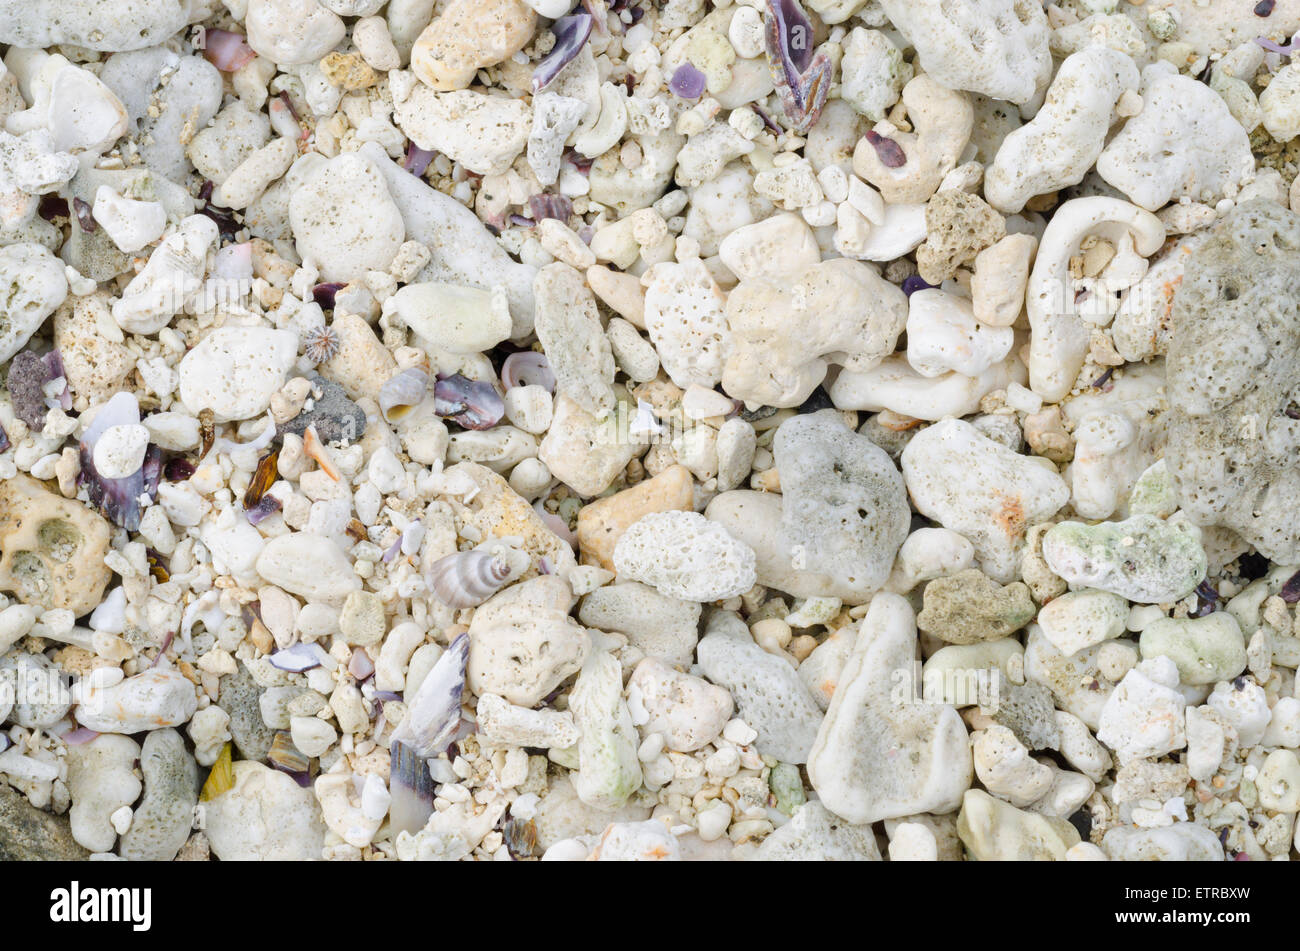 Abstract background, pieces of shells sand - Stock Image